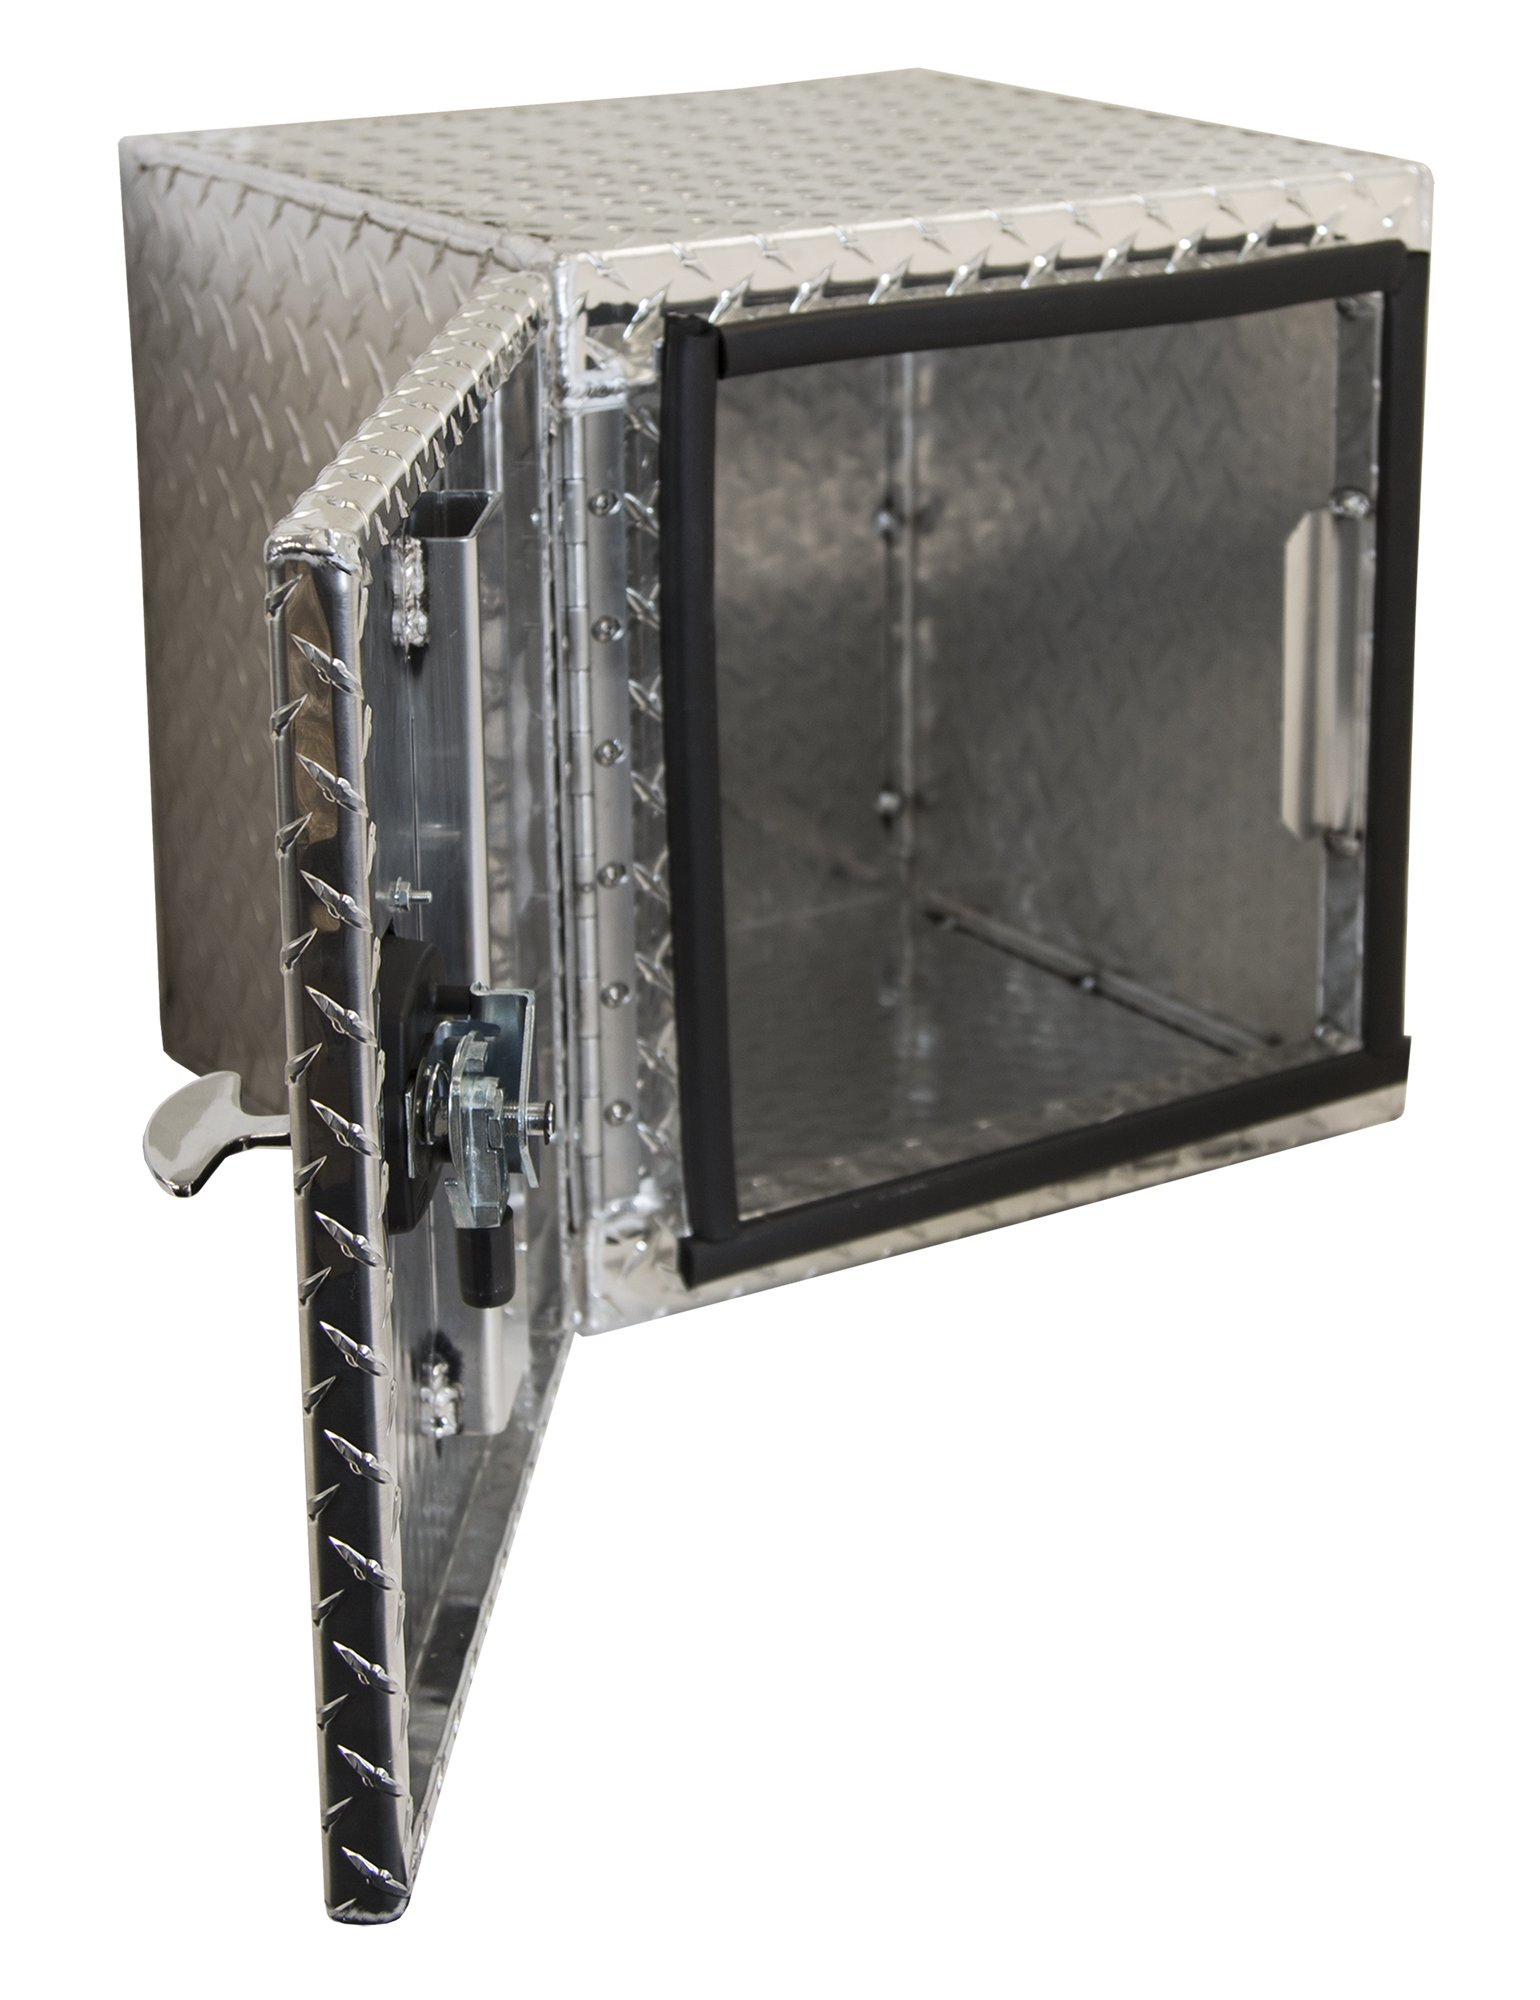 Buyers Products 1705200 Diamond Tread Aluminum Underbody Truck Box w/Barn Door (18x18x24 Inch) by Buyers Products (Image #2)